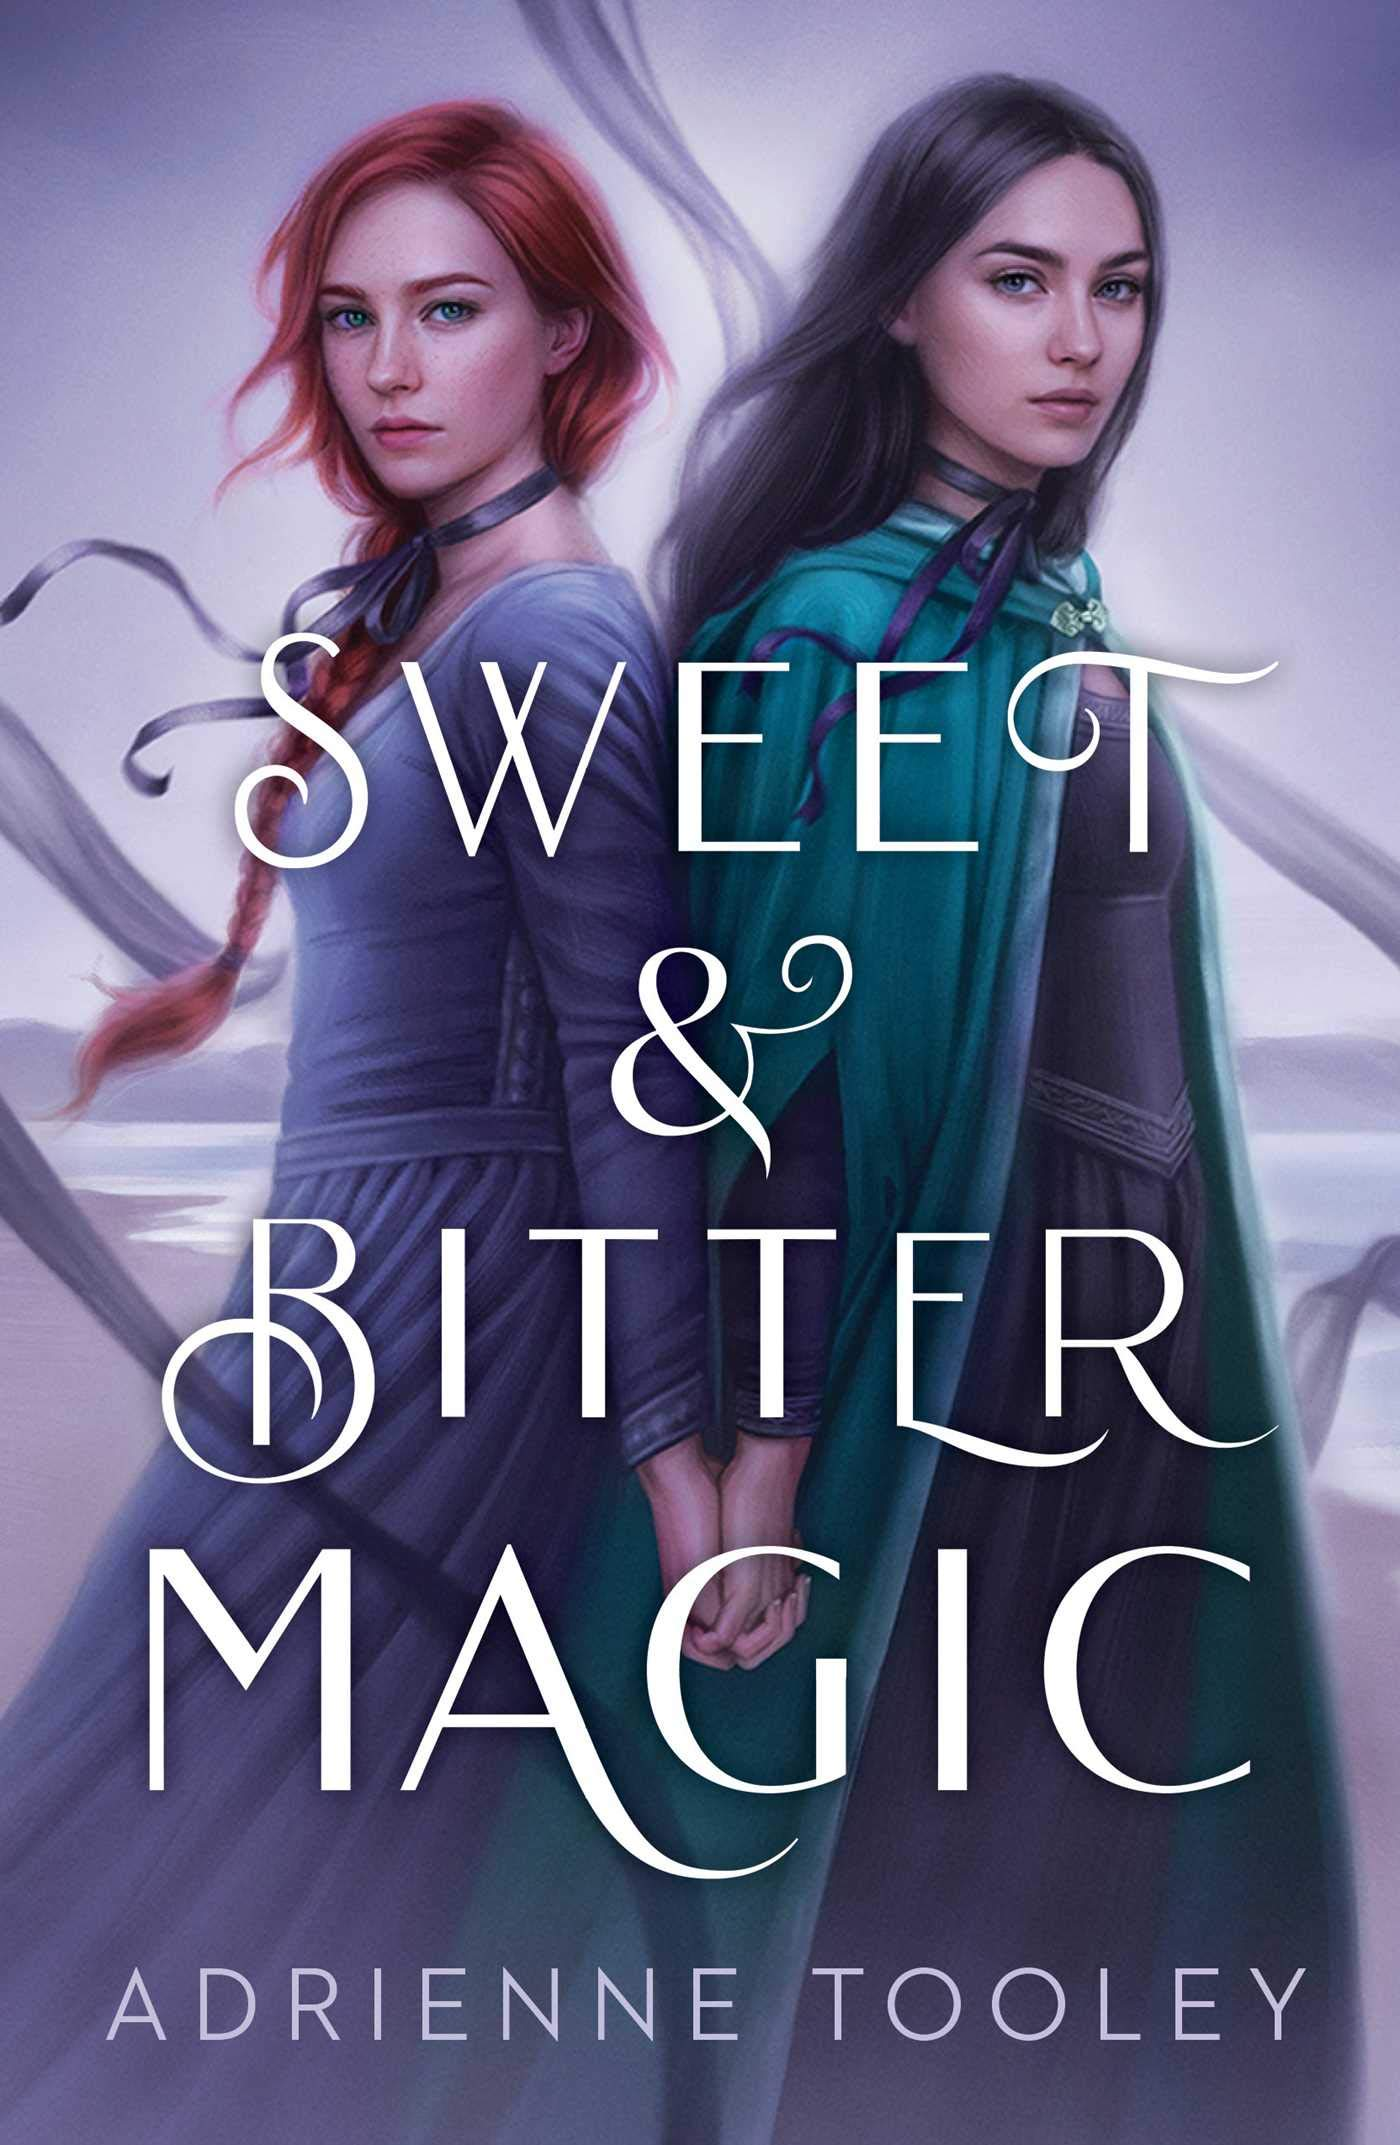 Sweet & Bitter Magic by Adrienne Tooley Book Cover